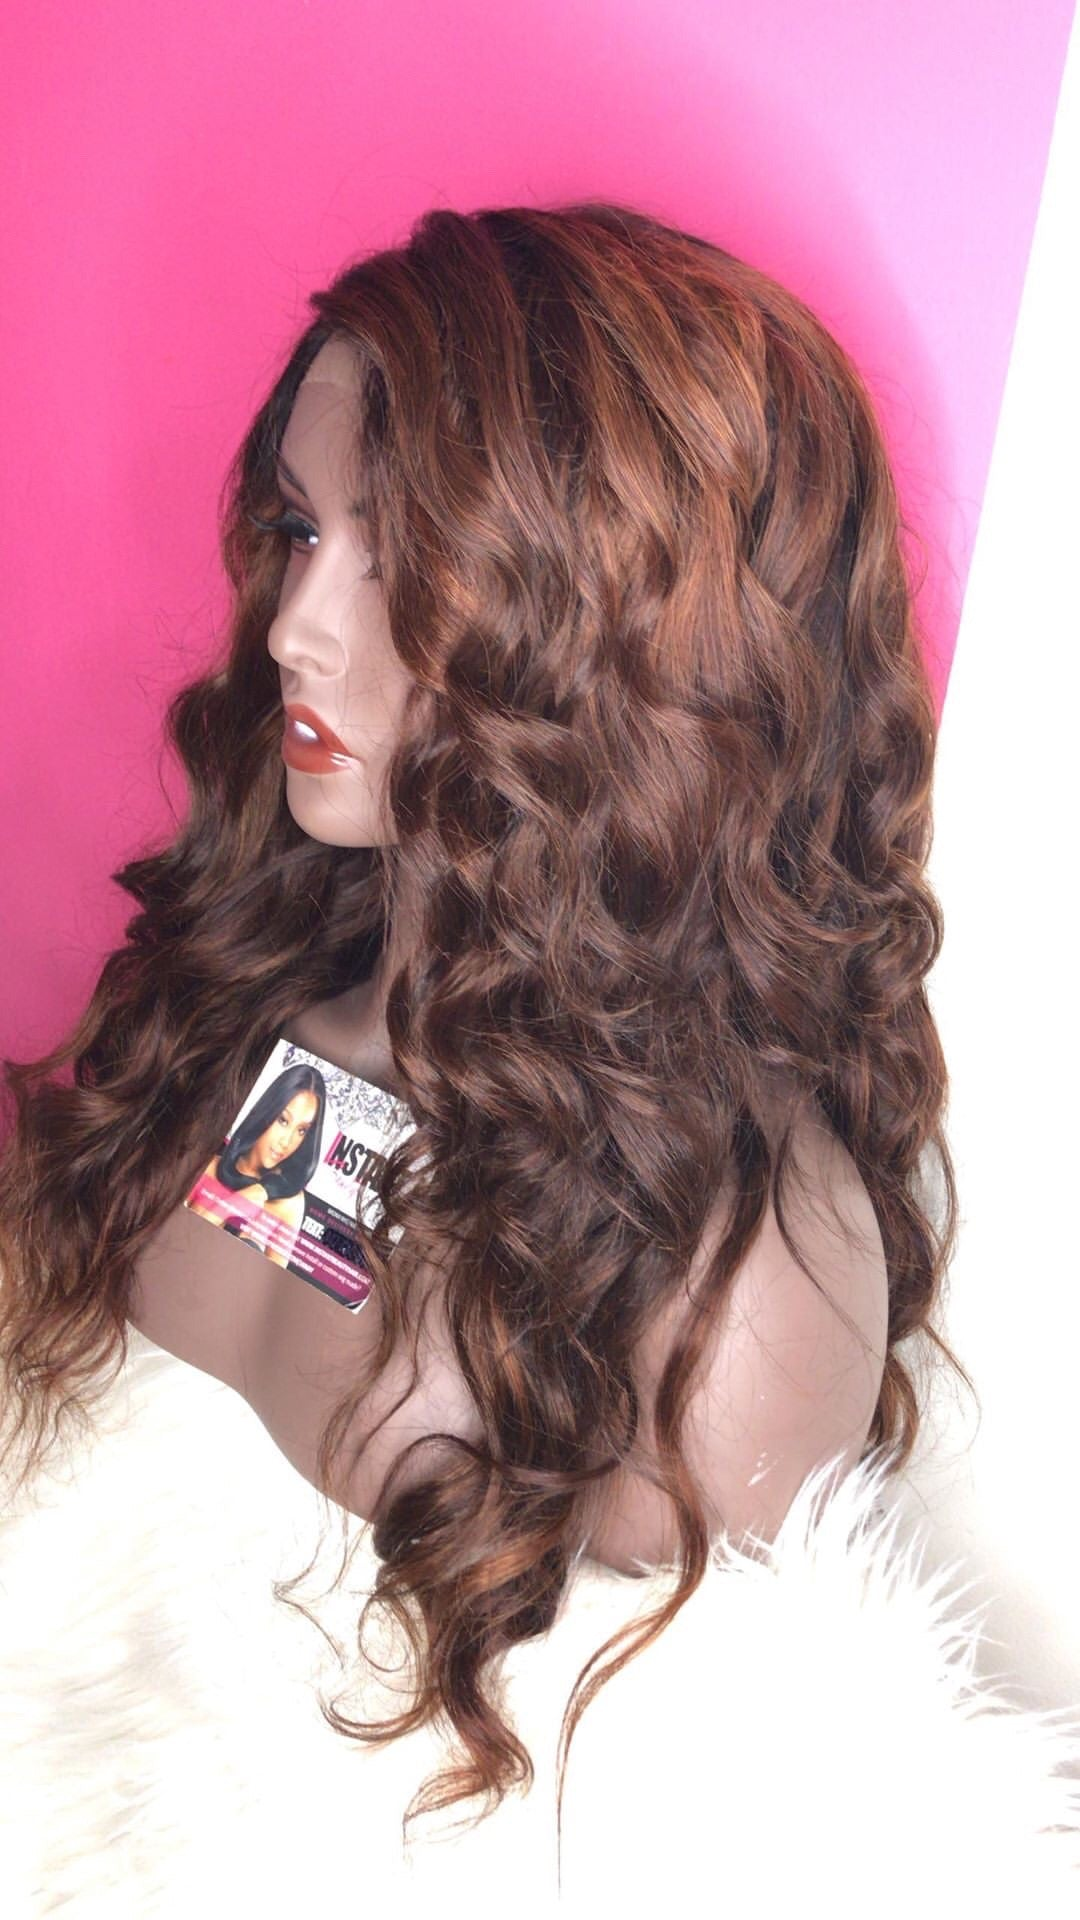 Instant Beauty Hair - Instant Beauty Hair